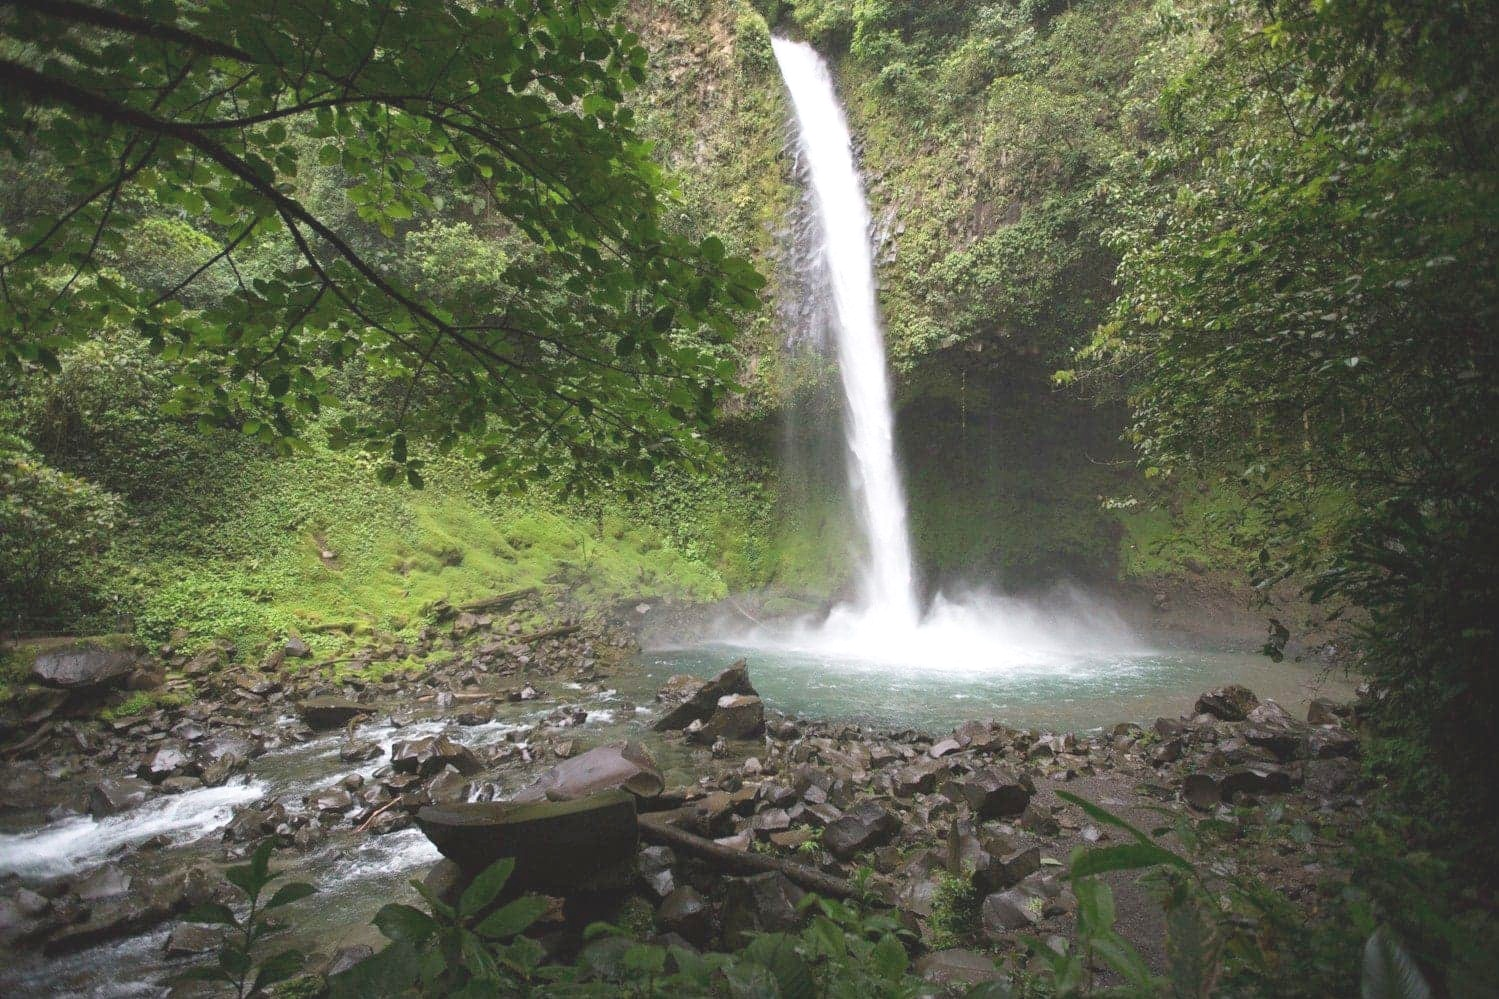 La Fortuna Waterfall in Arenal Volcano National Park.